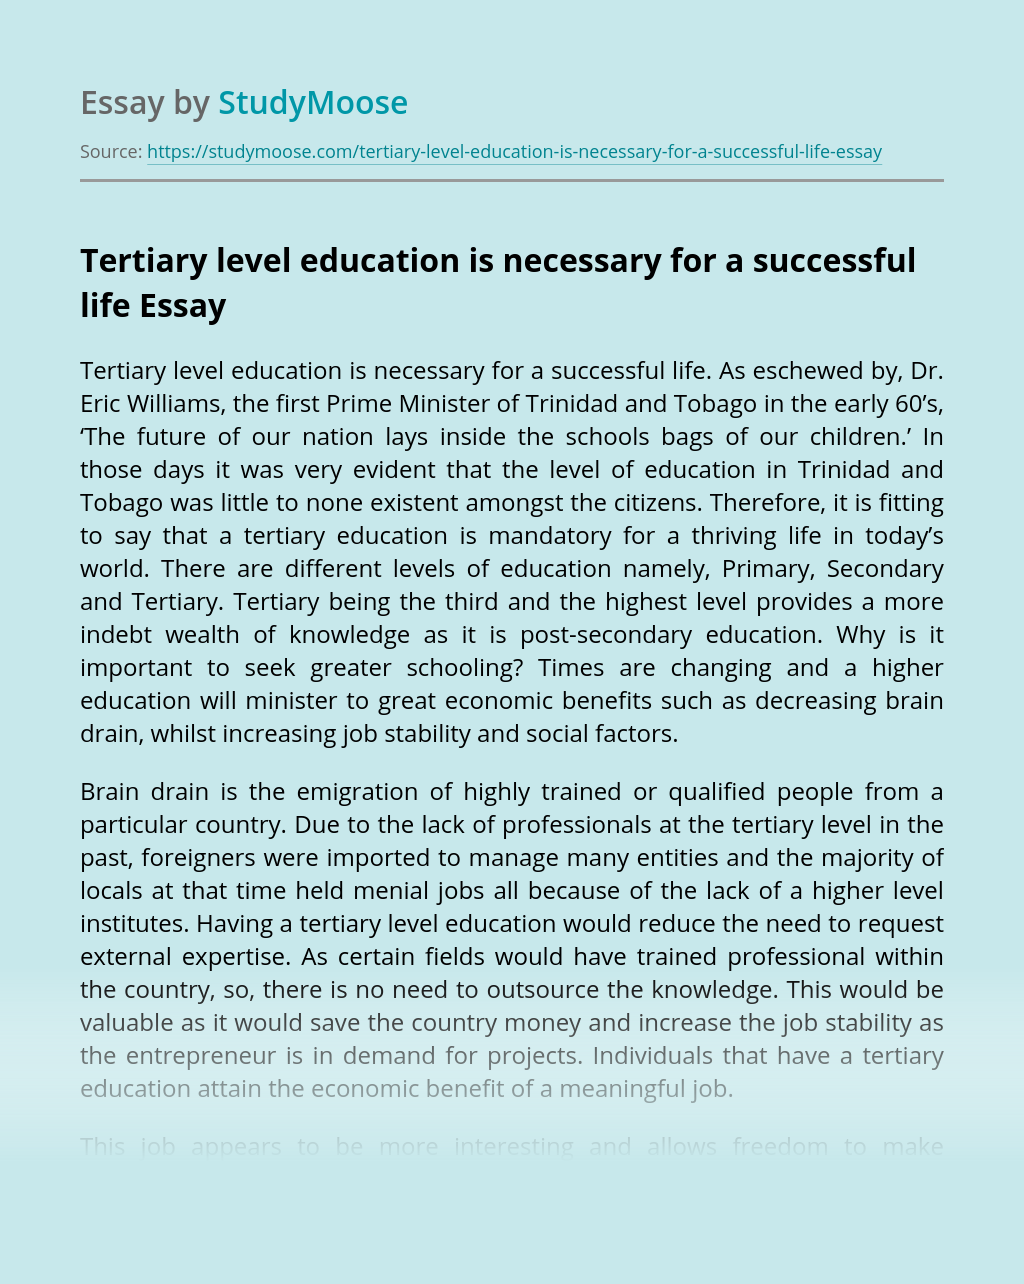 Tertiary level education is necessary for a successful life